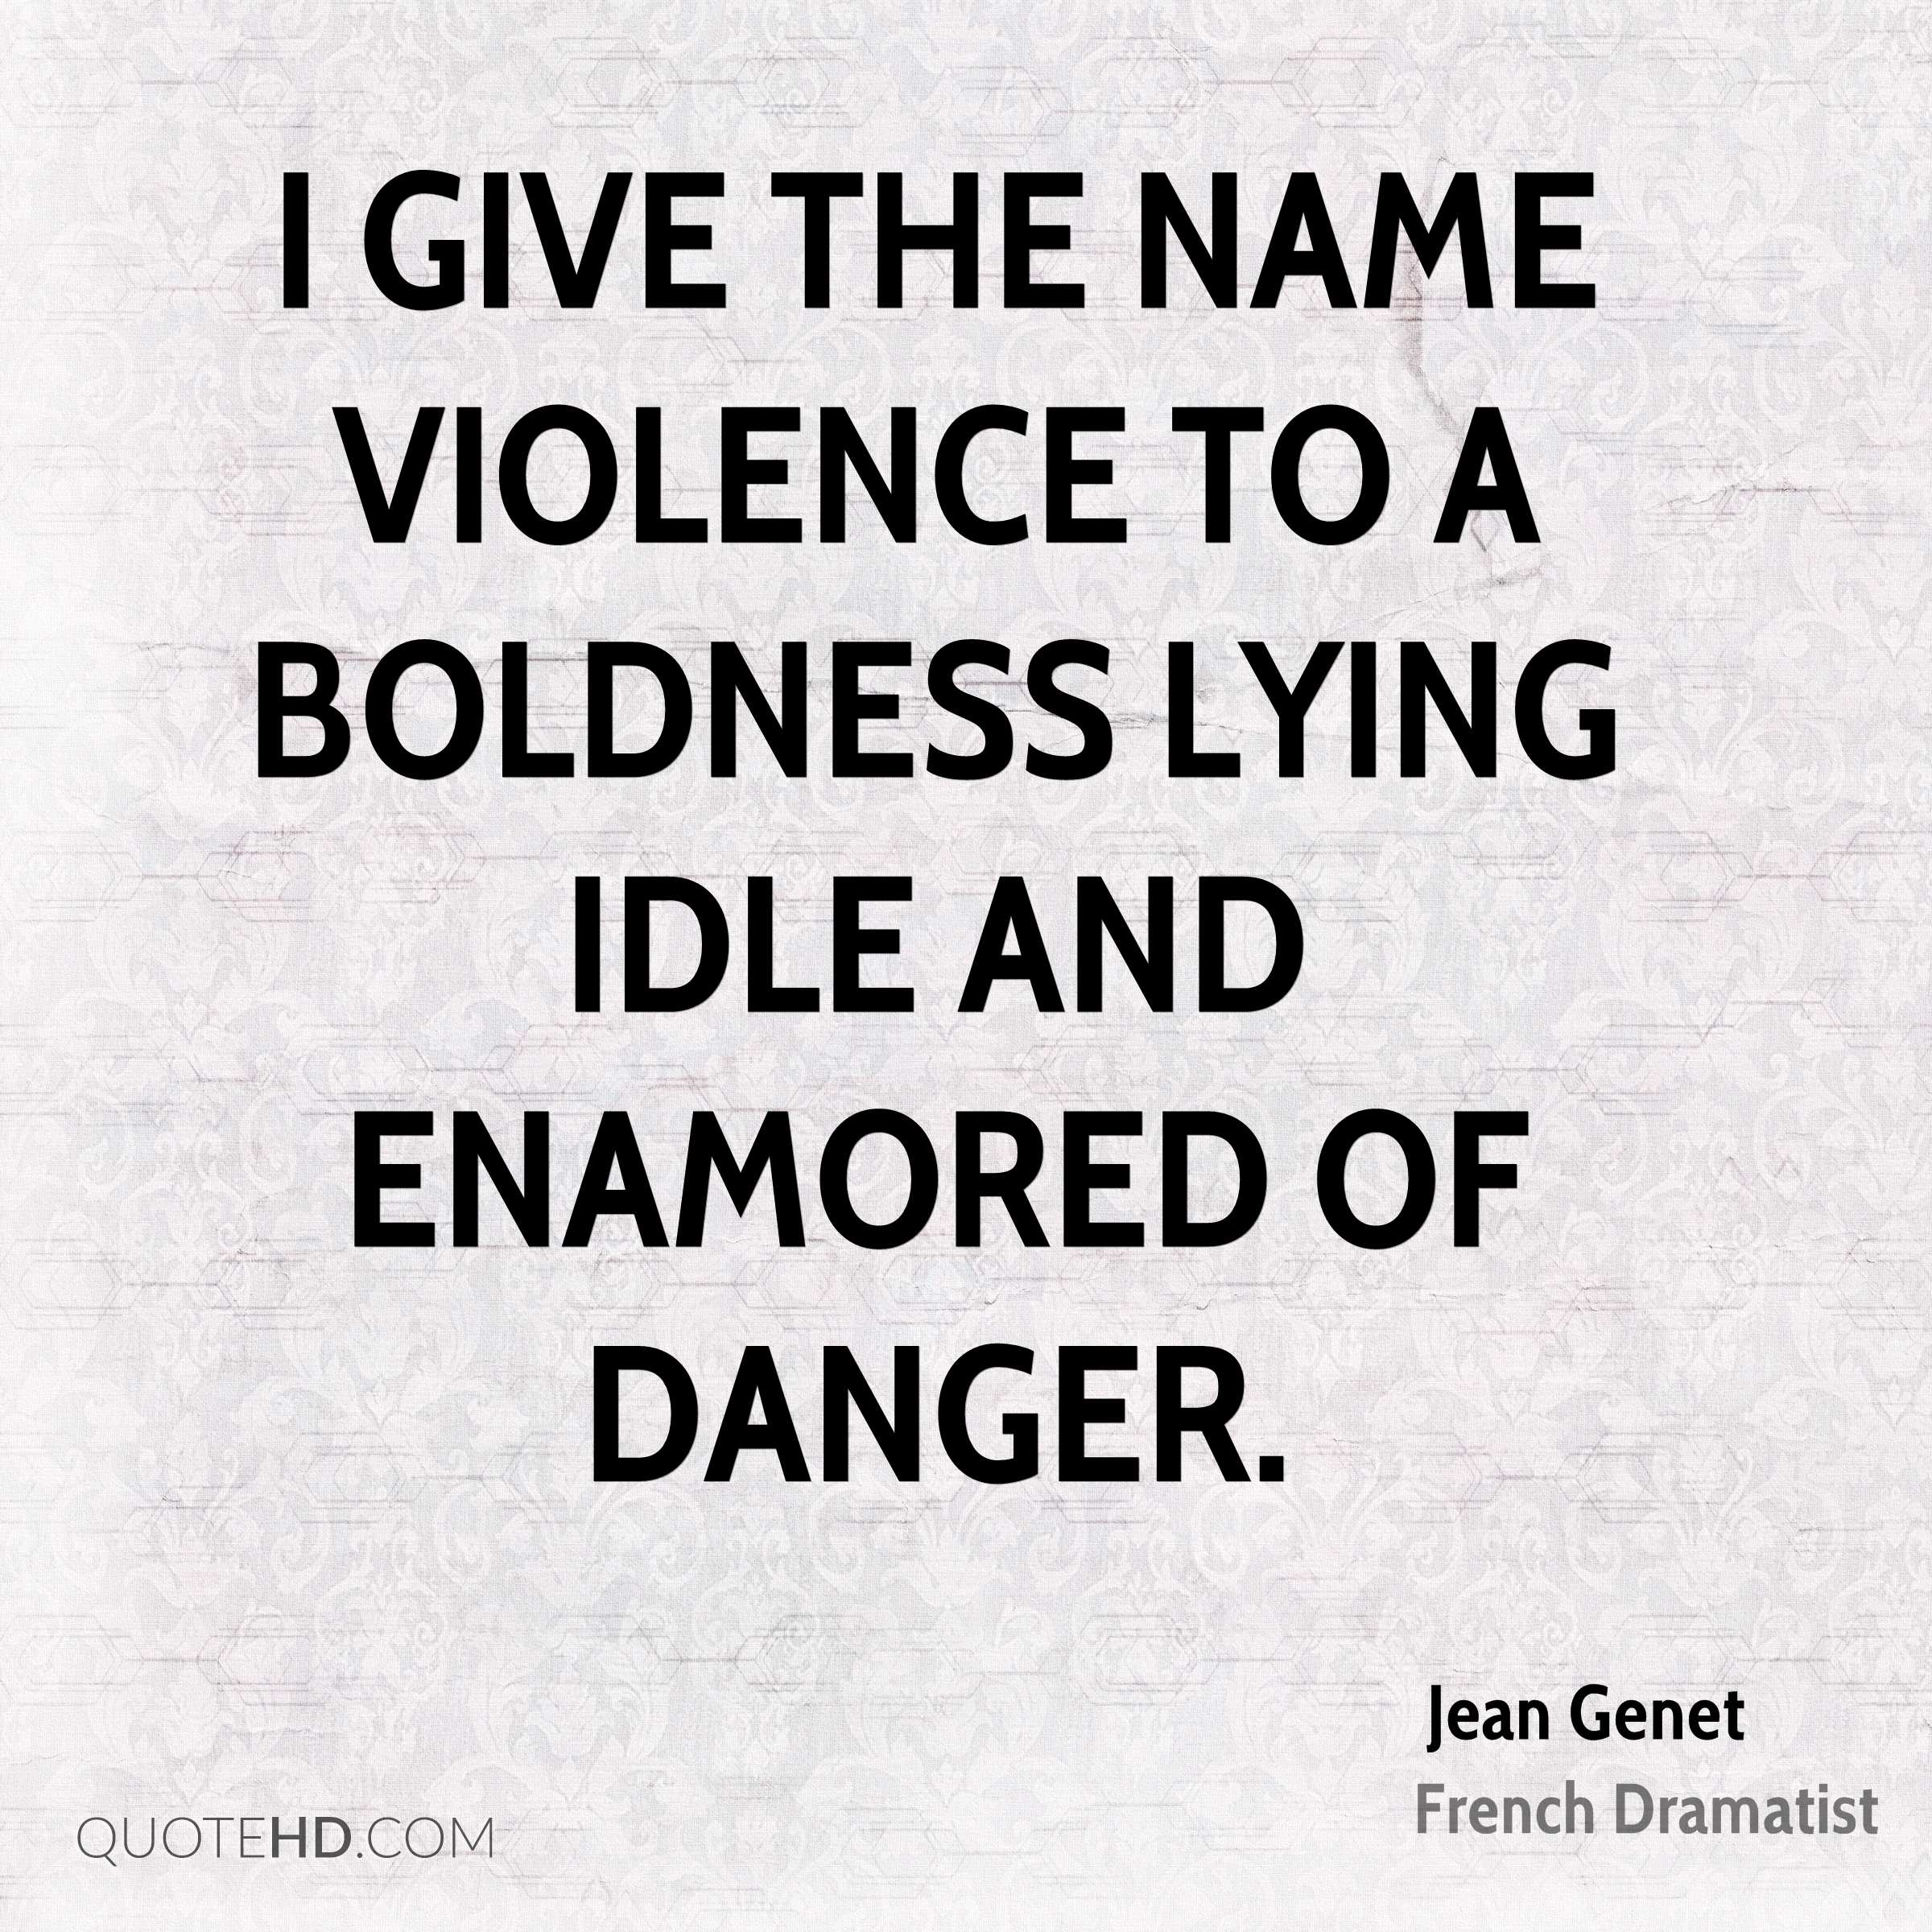 I give the name violence to a boldness lying idle and enamored of danger.